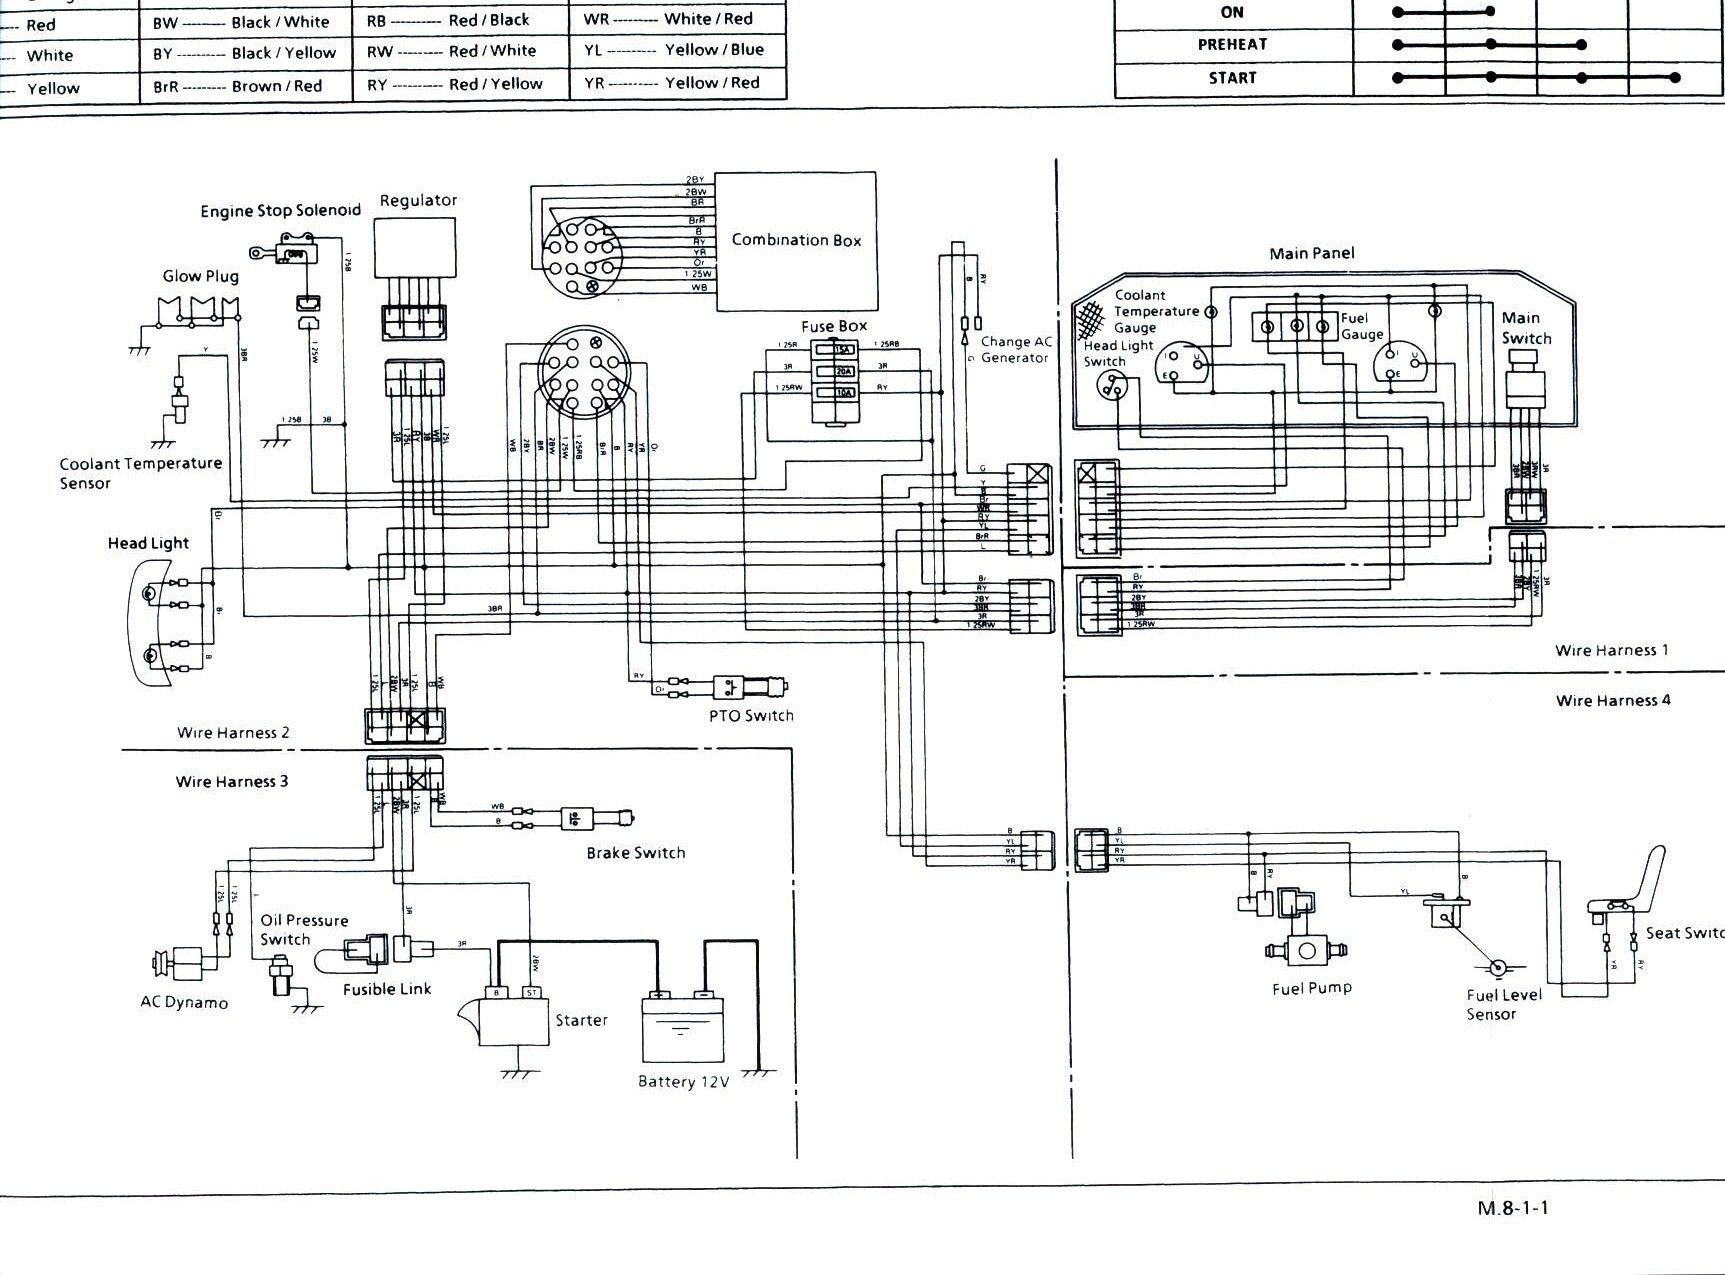 New Wiring Diagram For Kipor Generator Diagram Diagramsample Diagramtemplate Wiringdiagram Diagramchart Worksheet Worksheettemplate Diagram Kubota Wire